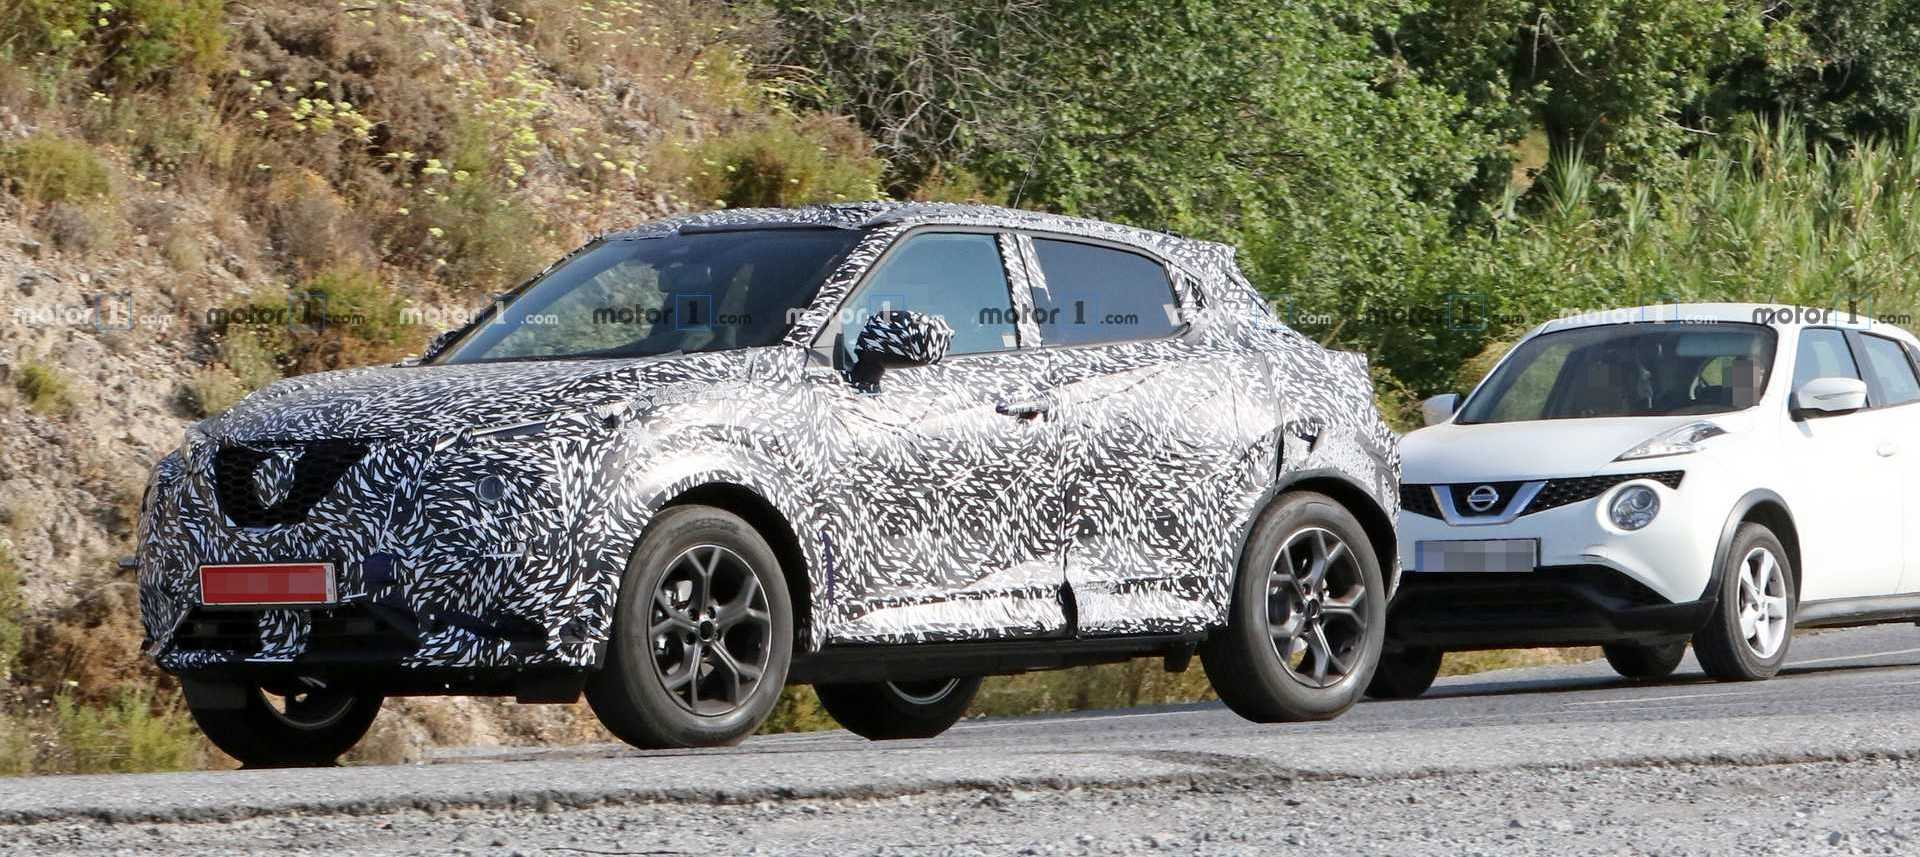 New Nissan Juke Spied Testing Together With The Current Model